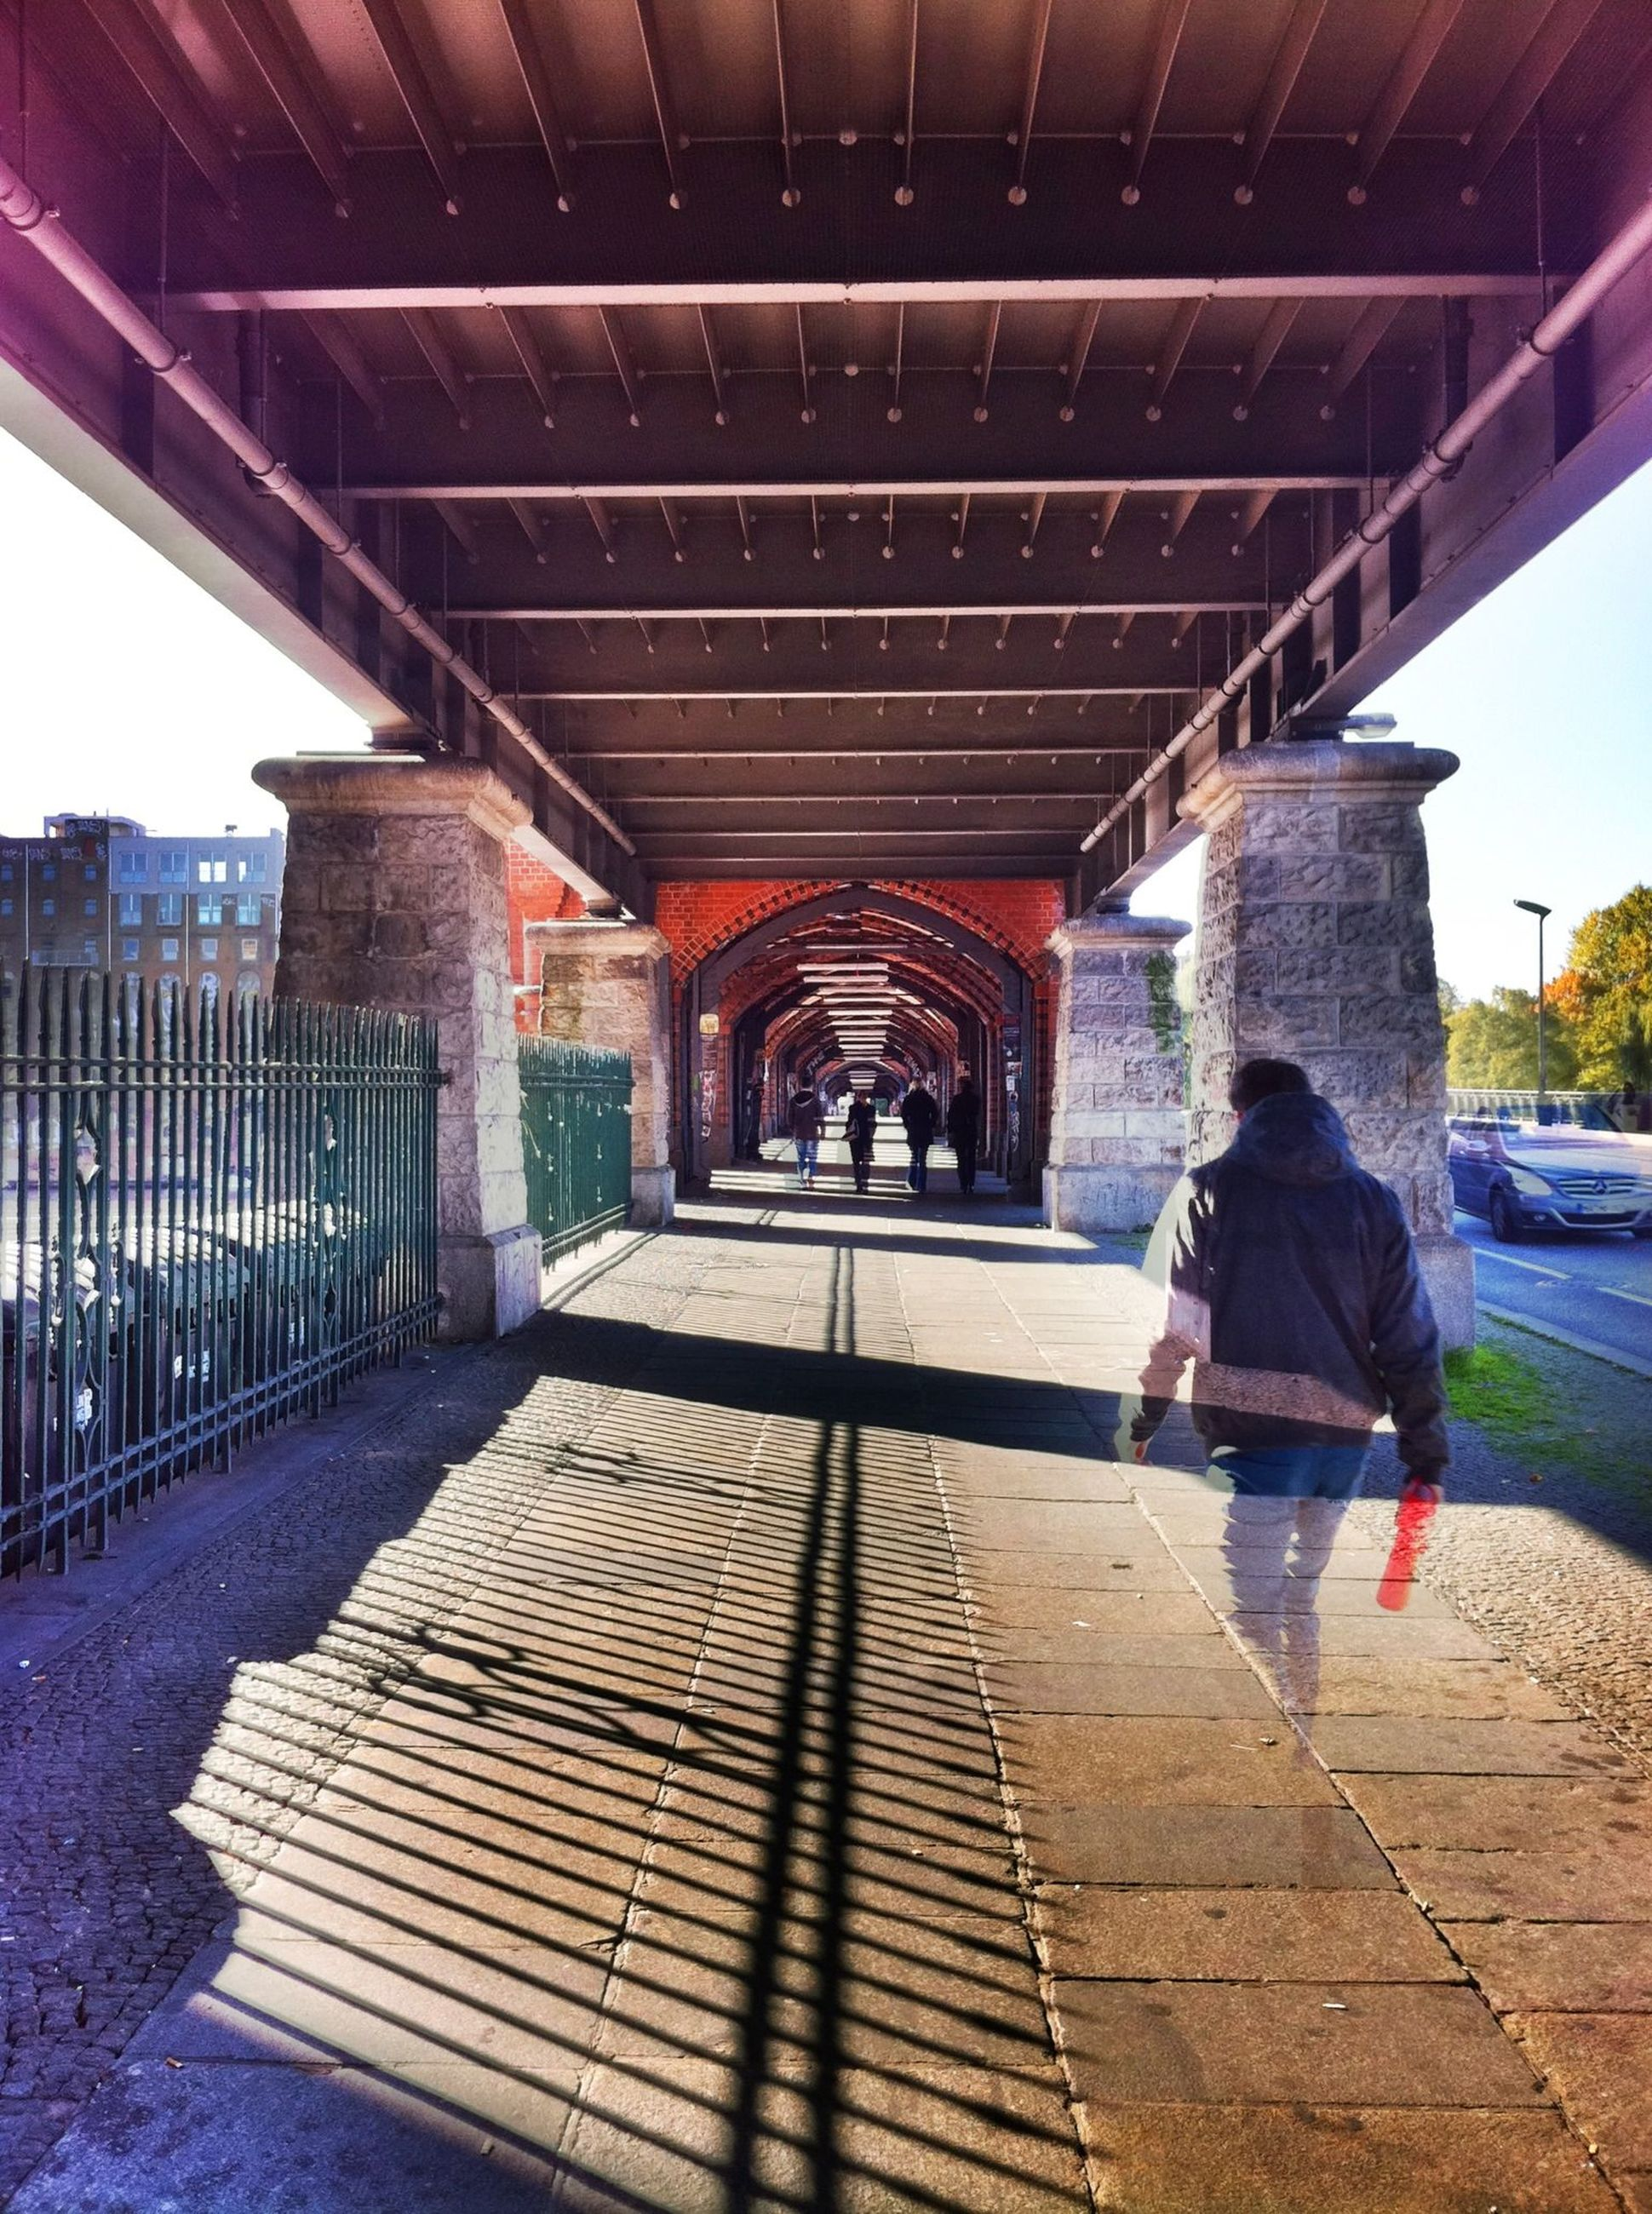 built structure, full length, architecture, lifestyles, rear view, the way forward, leisure activity, men, person, walking, arch, architectural column, casual clothing, sunlight, sky, day, travel